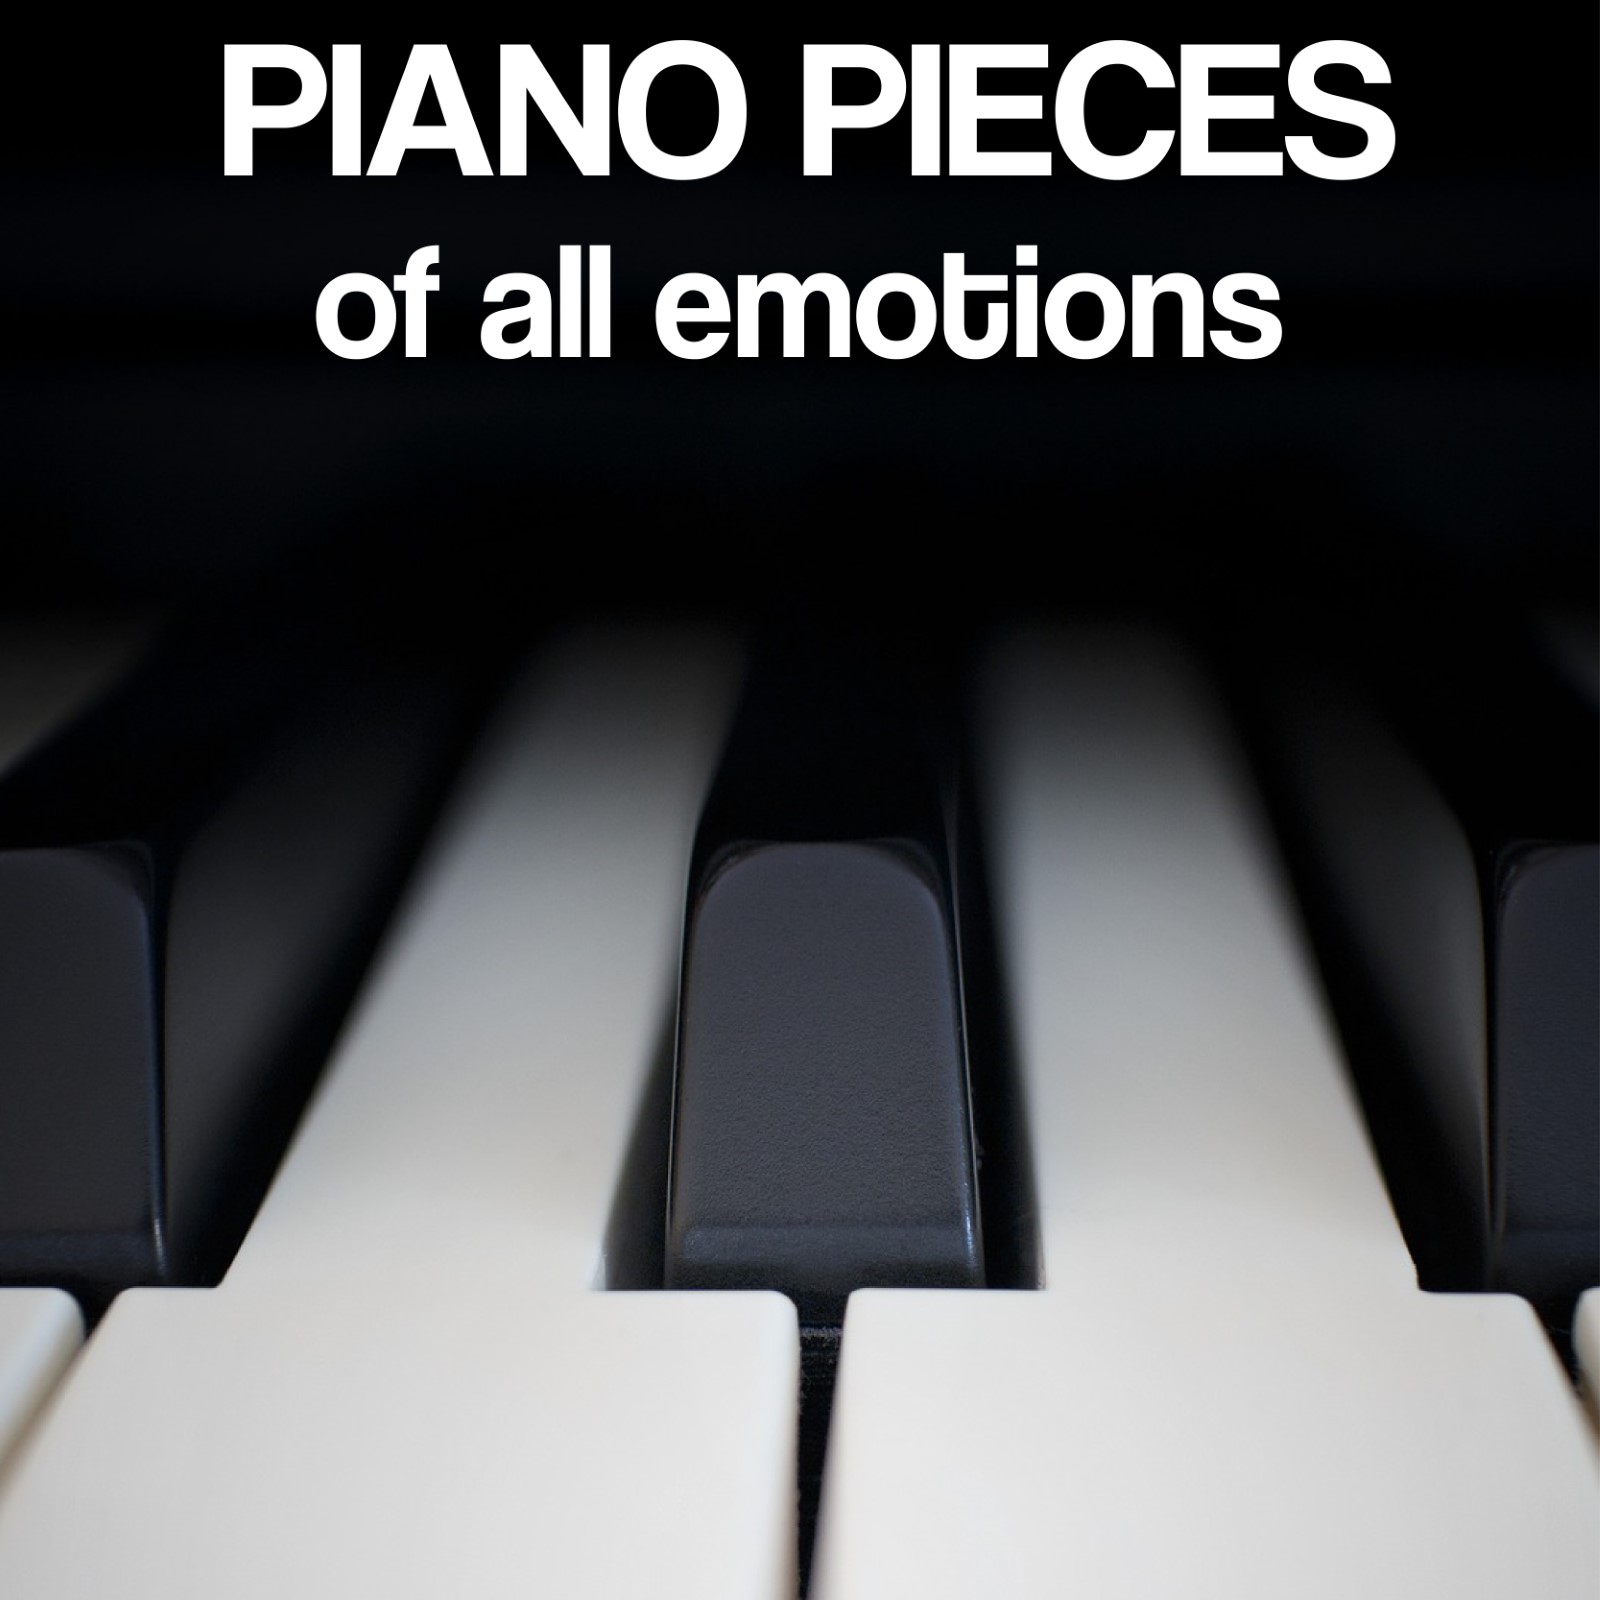 - I use piano in almost everything, but in this collection you find the songs that were written with the keys as the primary instrument.